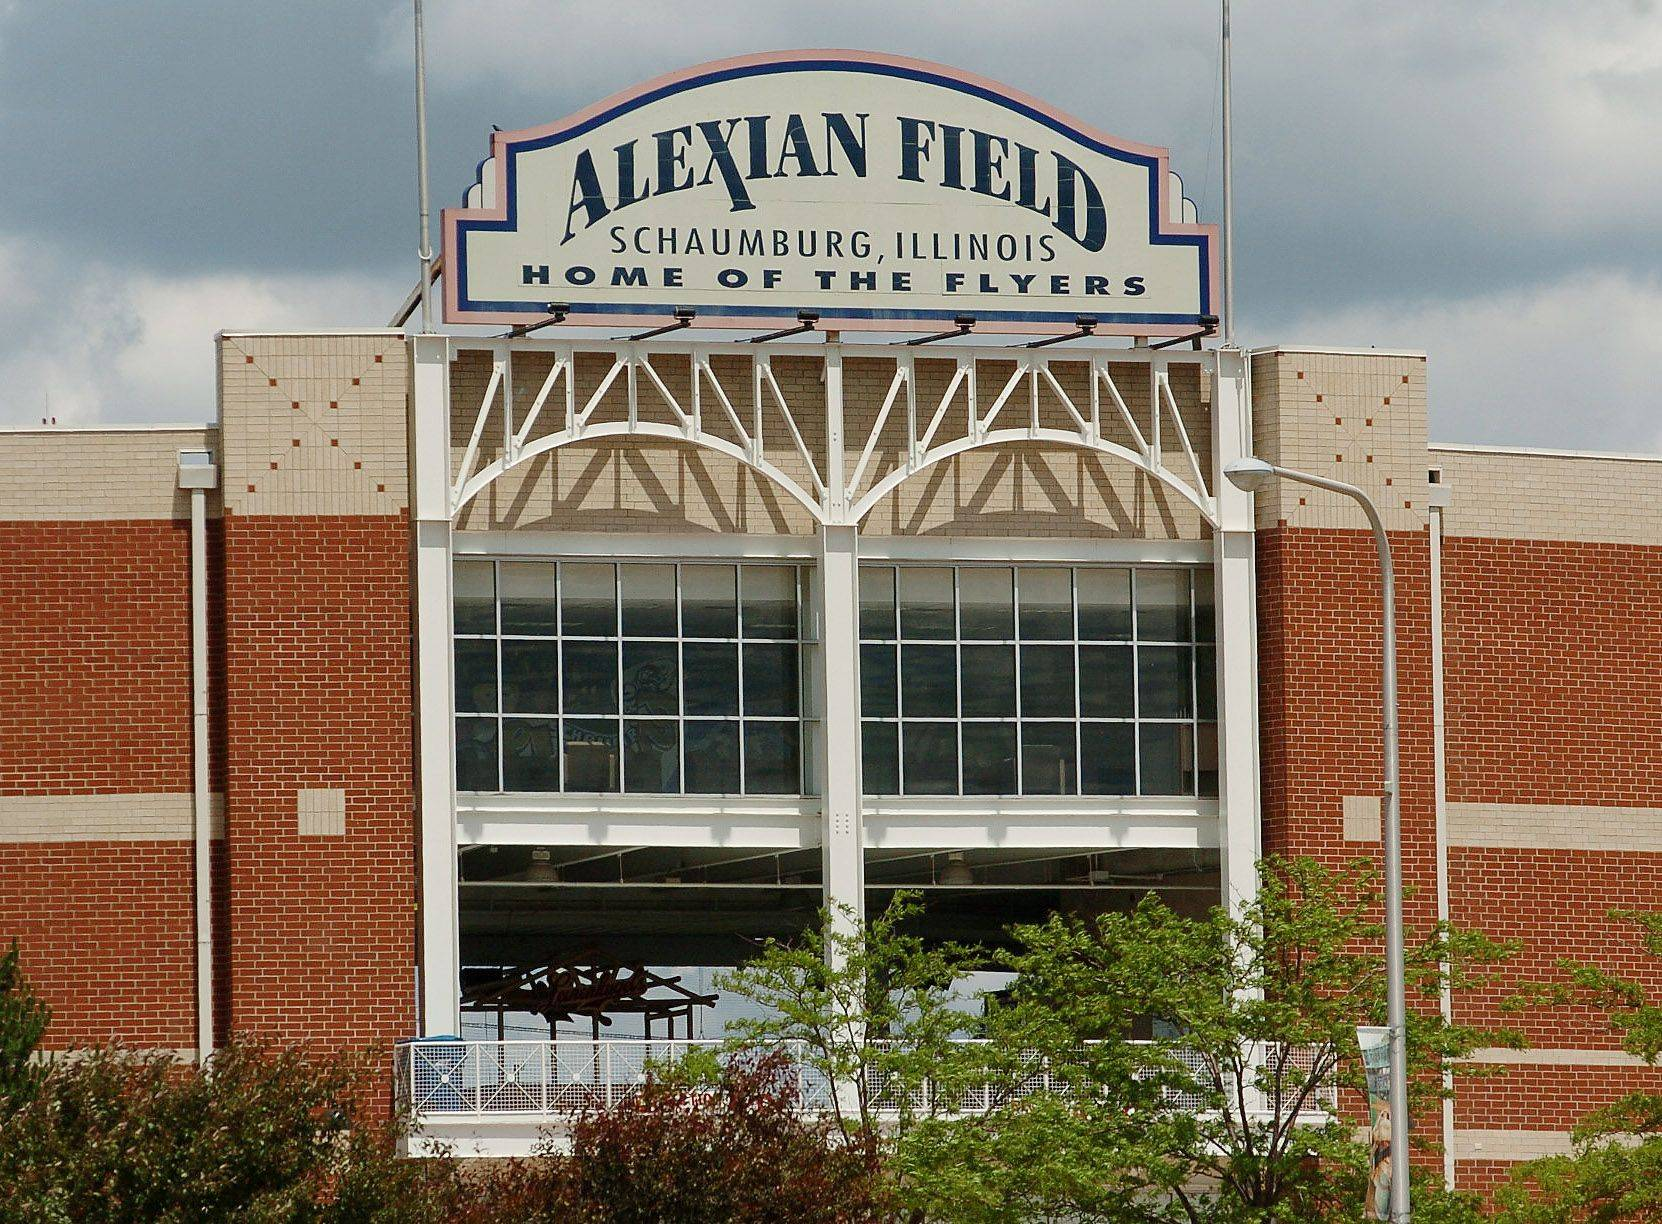 Schaumburg's Alexian Field has been the home of the Schaumburg Flyers baseball team since 1999, but a pending sale of the team and a lawsuit against it for overdue rent could determine who plays there in the summer of 2011.